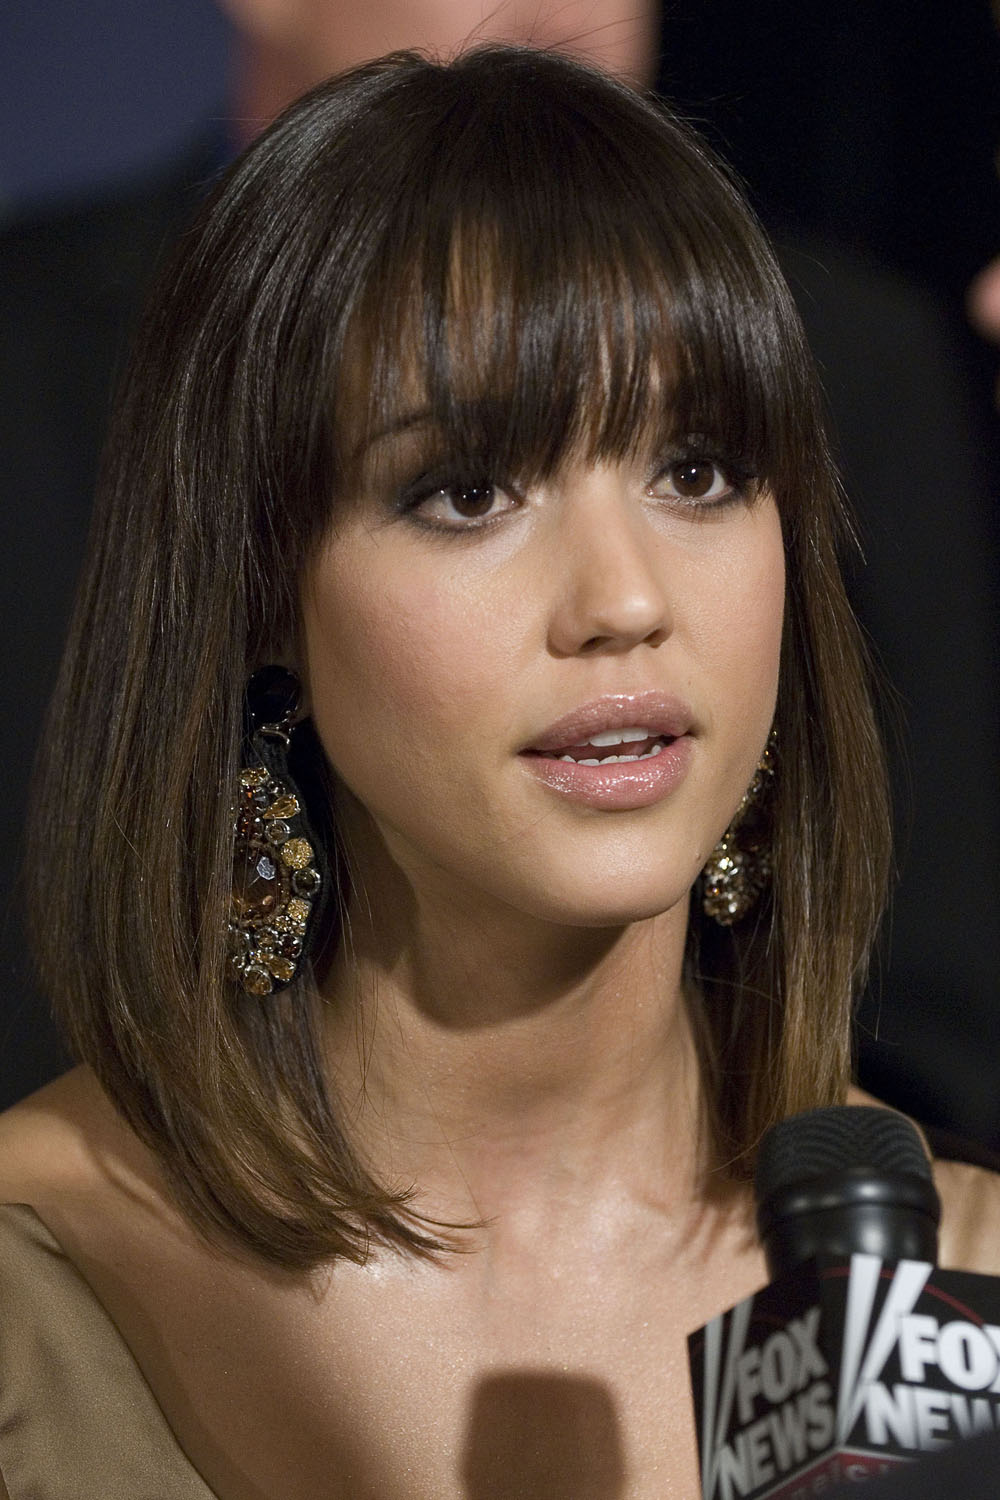 Jessica Alba Romance Hairstyles Pictures, Long Hairstyle 2013, Hairstyle 2013, New Long Hairstyle 2013, Celebrity Long Romance Hairstyles 2078